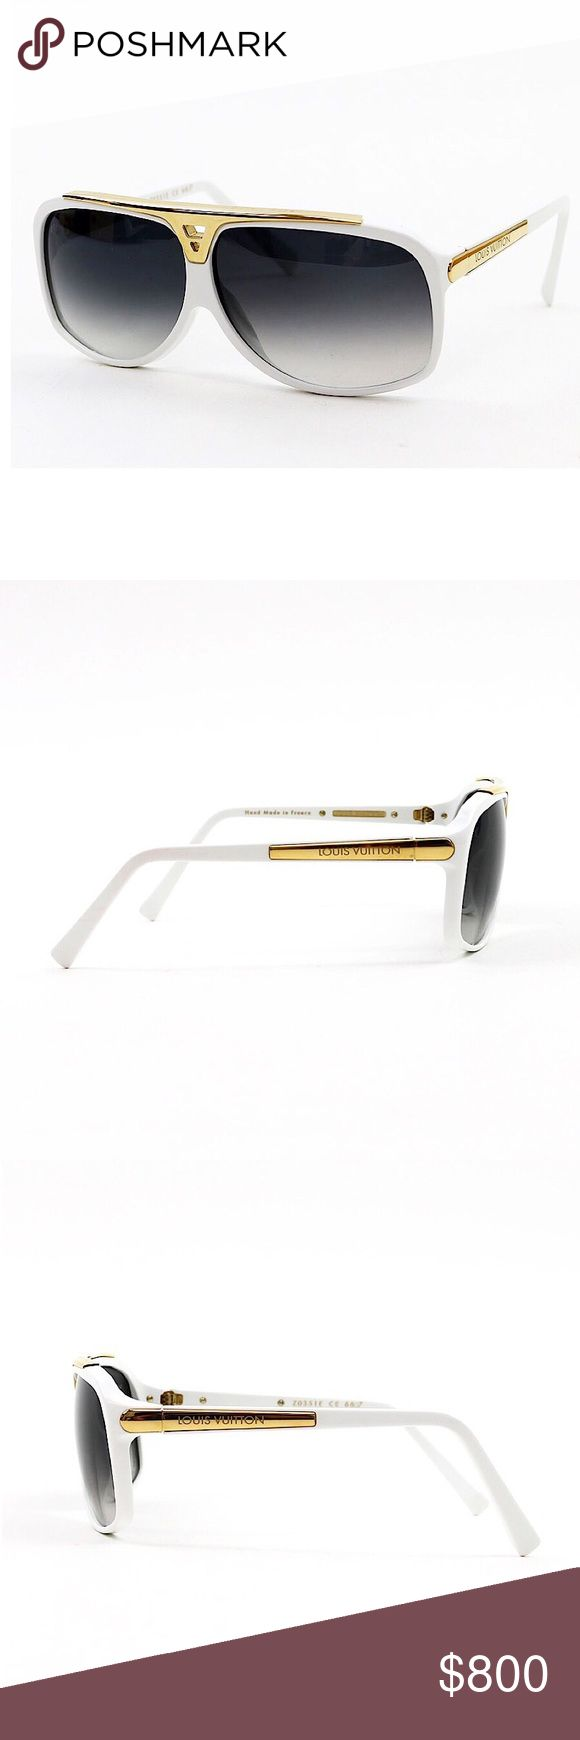 Authentic Vuitton White Evidence Z0351 Sunglasses Authentic Louis Vuitton White Evidence Z0351 Sunglasses  Includes LV Storage Box,Sunglasses Case,Dustbag,Booklet  Hand Made in France  Acetate Frame,Gradient Lenses,Gold Accents Louis Vuitton Accessories Sunglasses